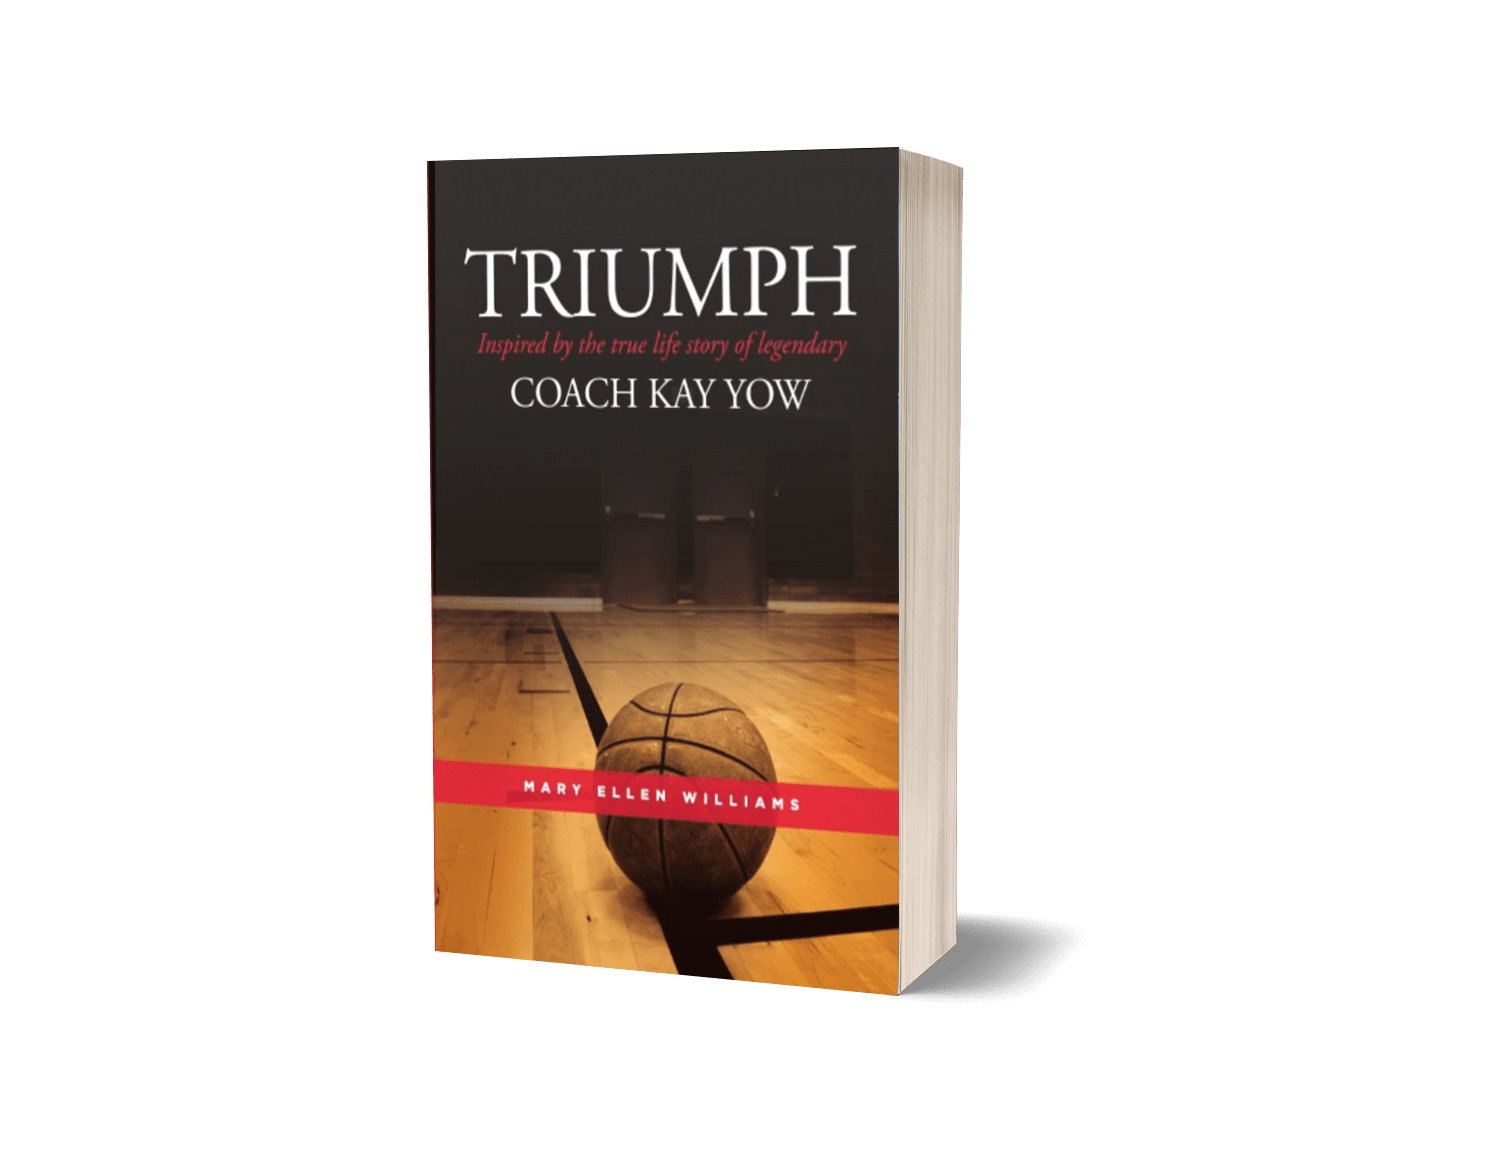 TRIUMPH: Inspired by the true life story of legendary Coach Kay Yow